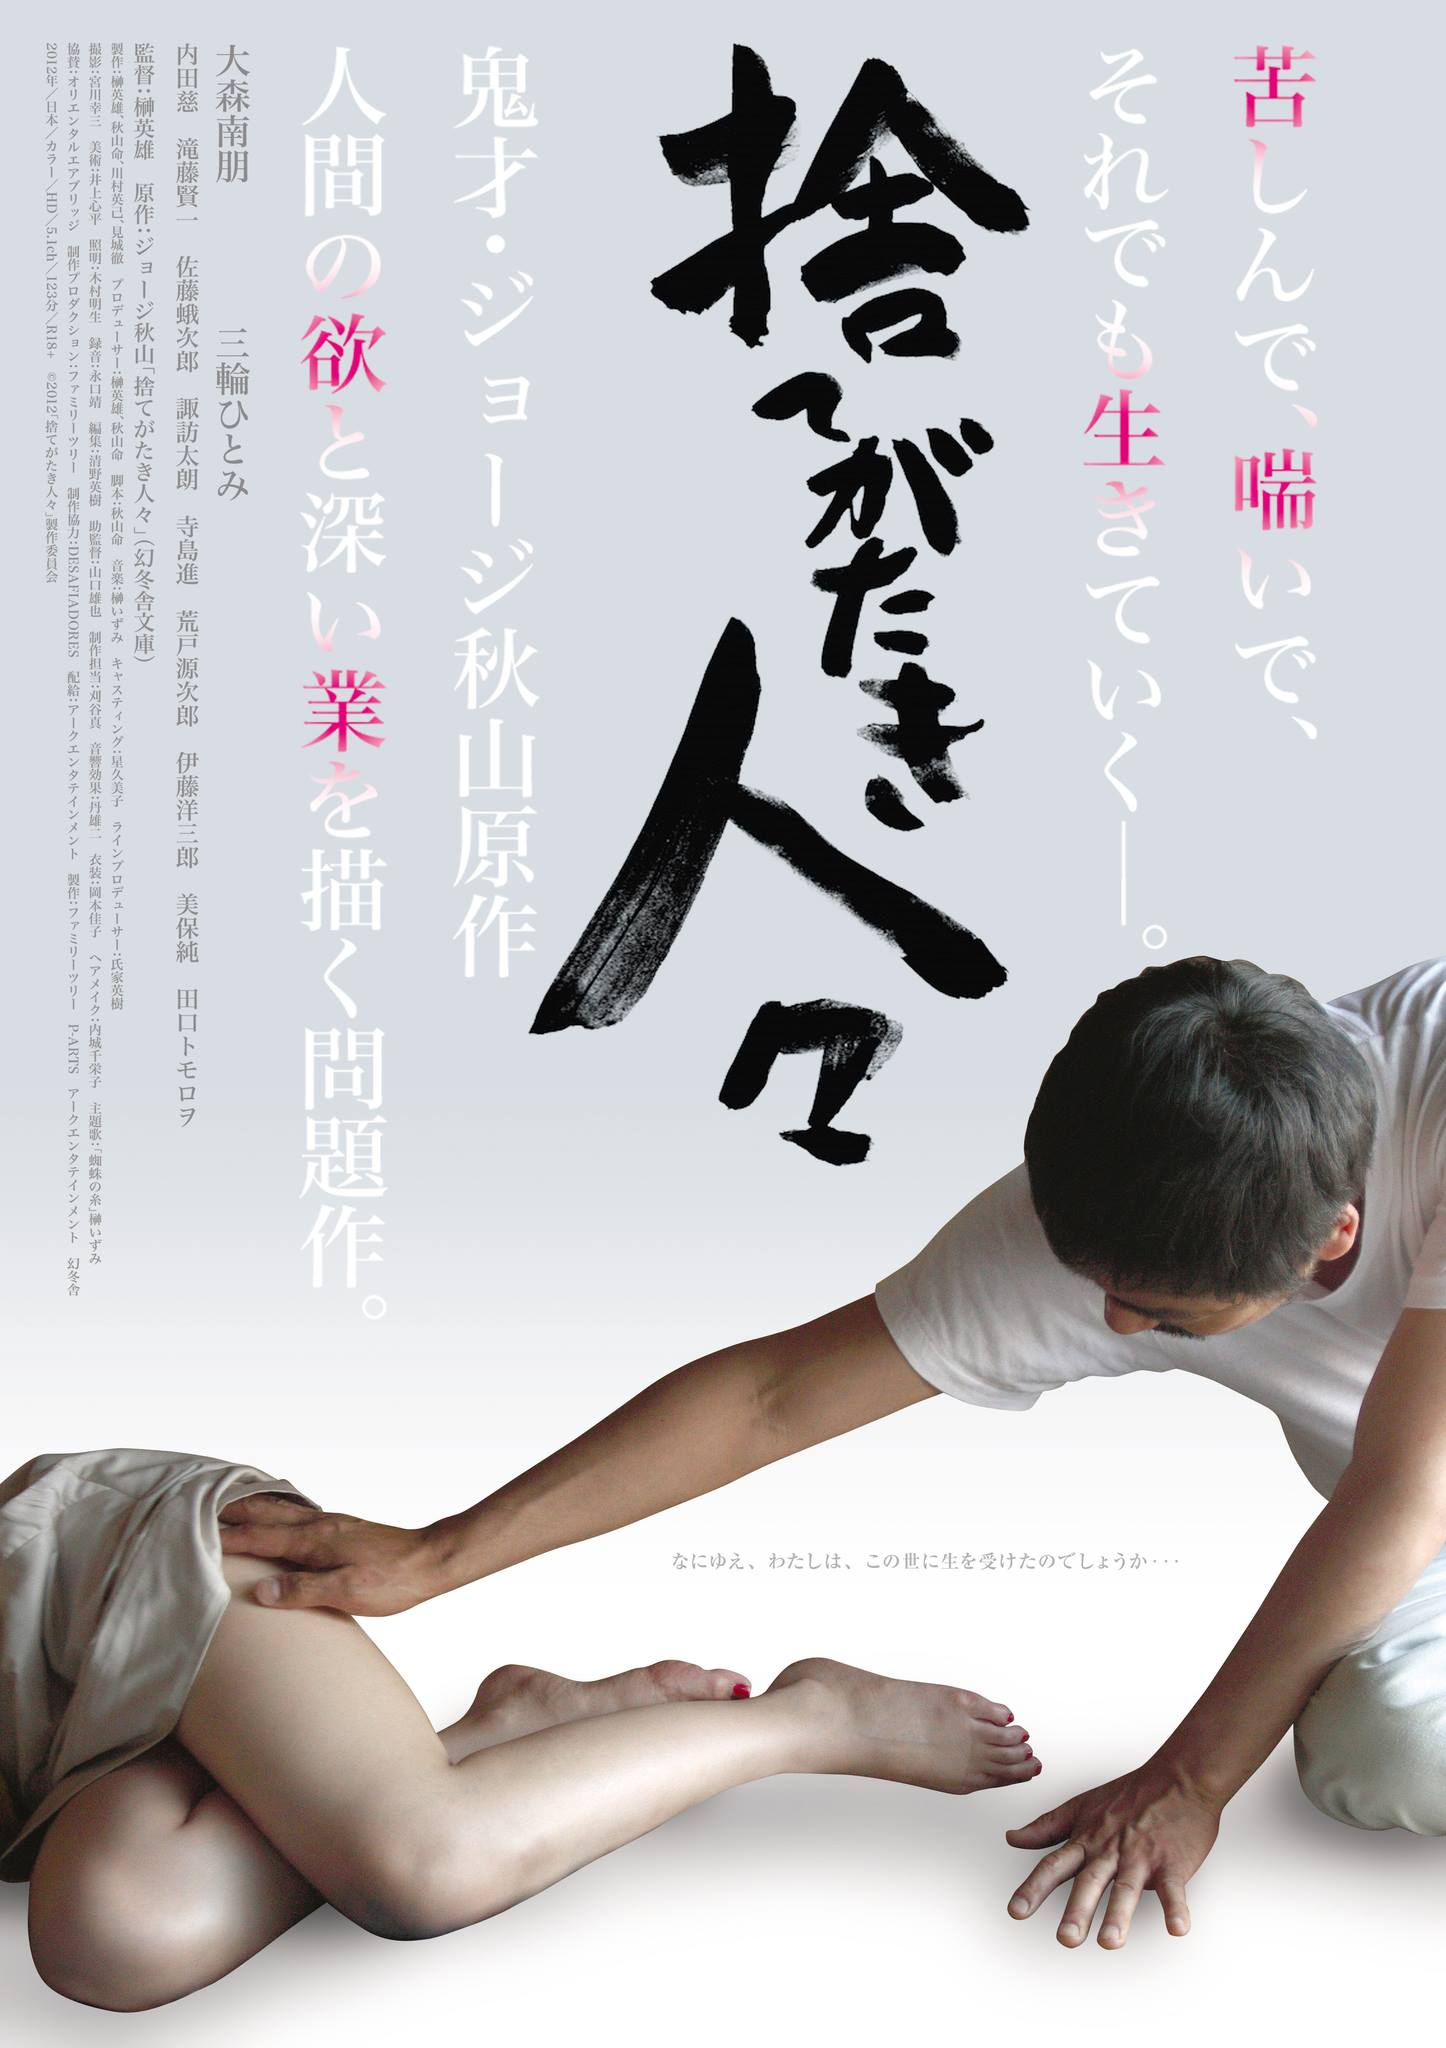 free, movie, download 2014, ryemovies, ganool, Disregarded People 捨てがたき人々, Genjiro Arato, Ken'ichi Endô, Yôzaburô Itô